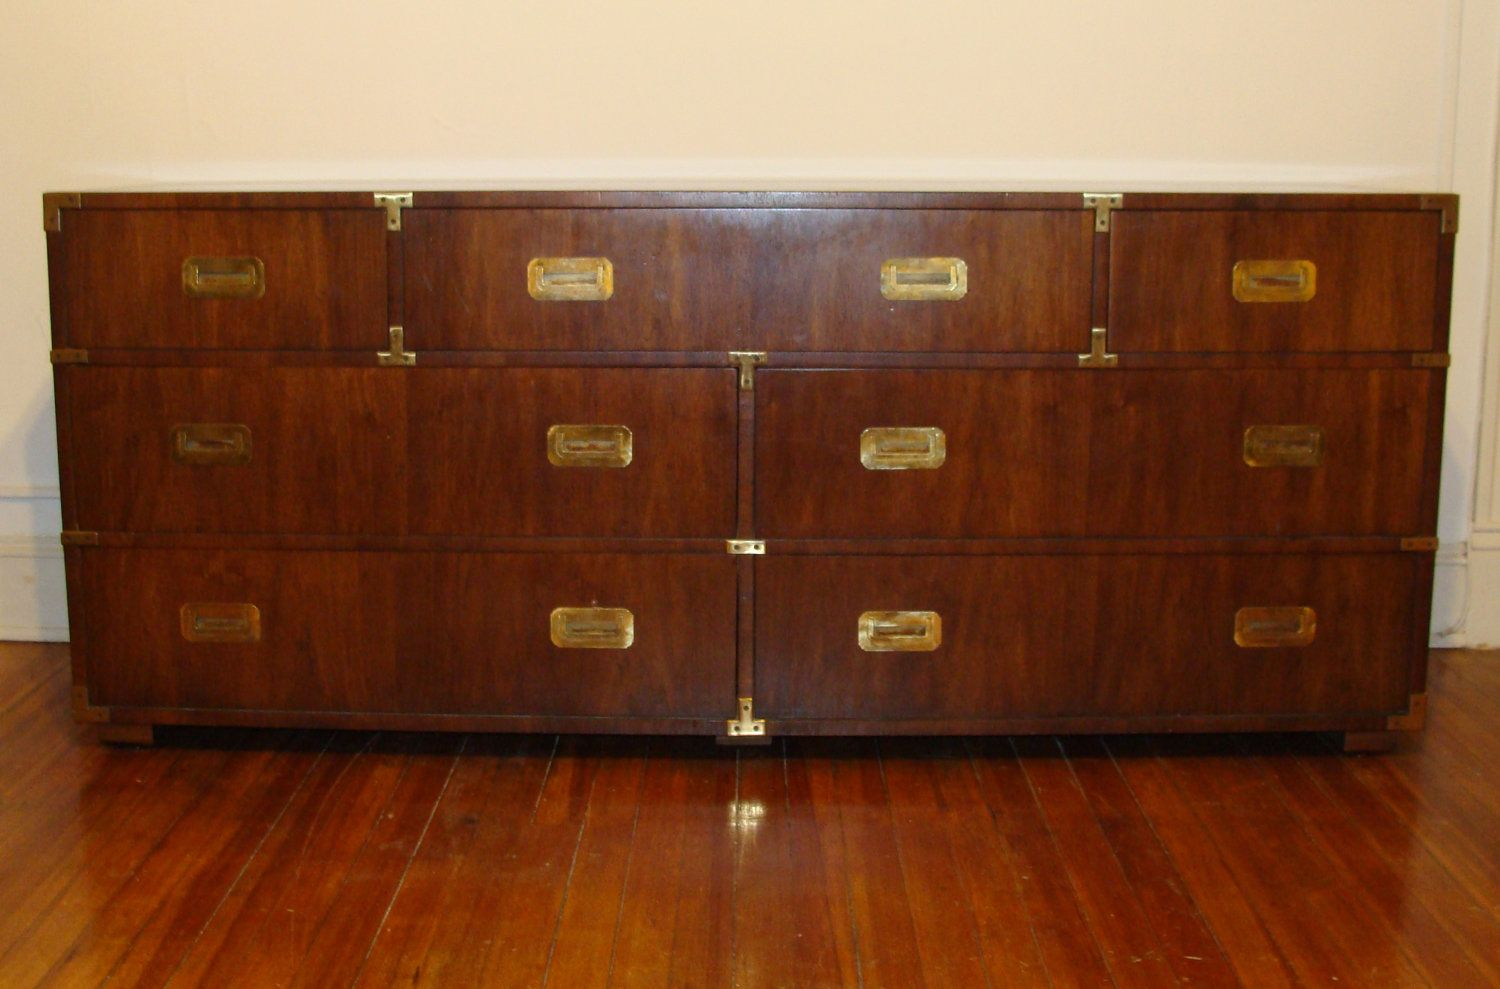 The Iconic Henredon Campaign Chest 7 Drawer All Original 6 Ft Vintage Campaign Dresser Hollywood